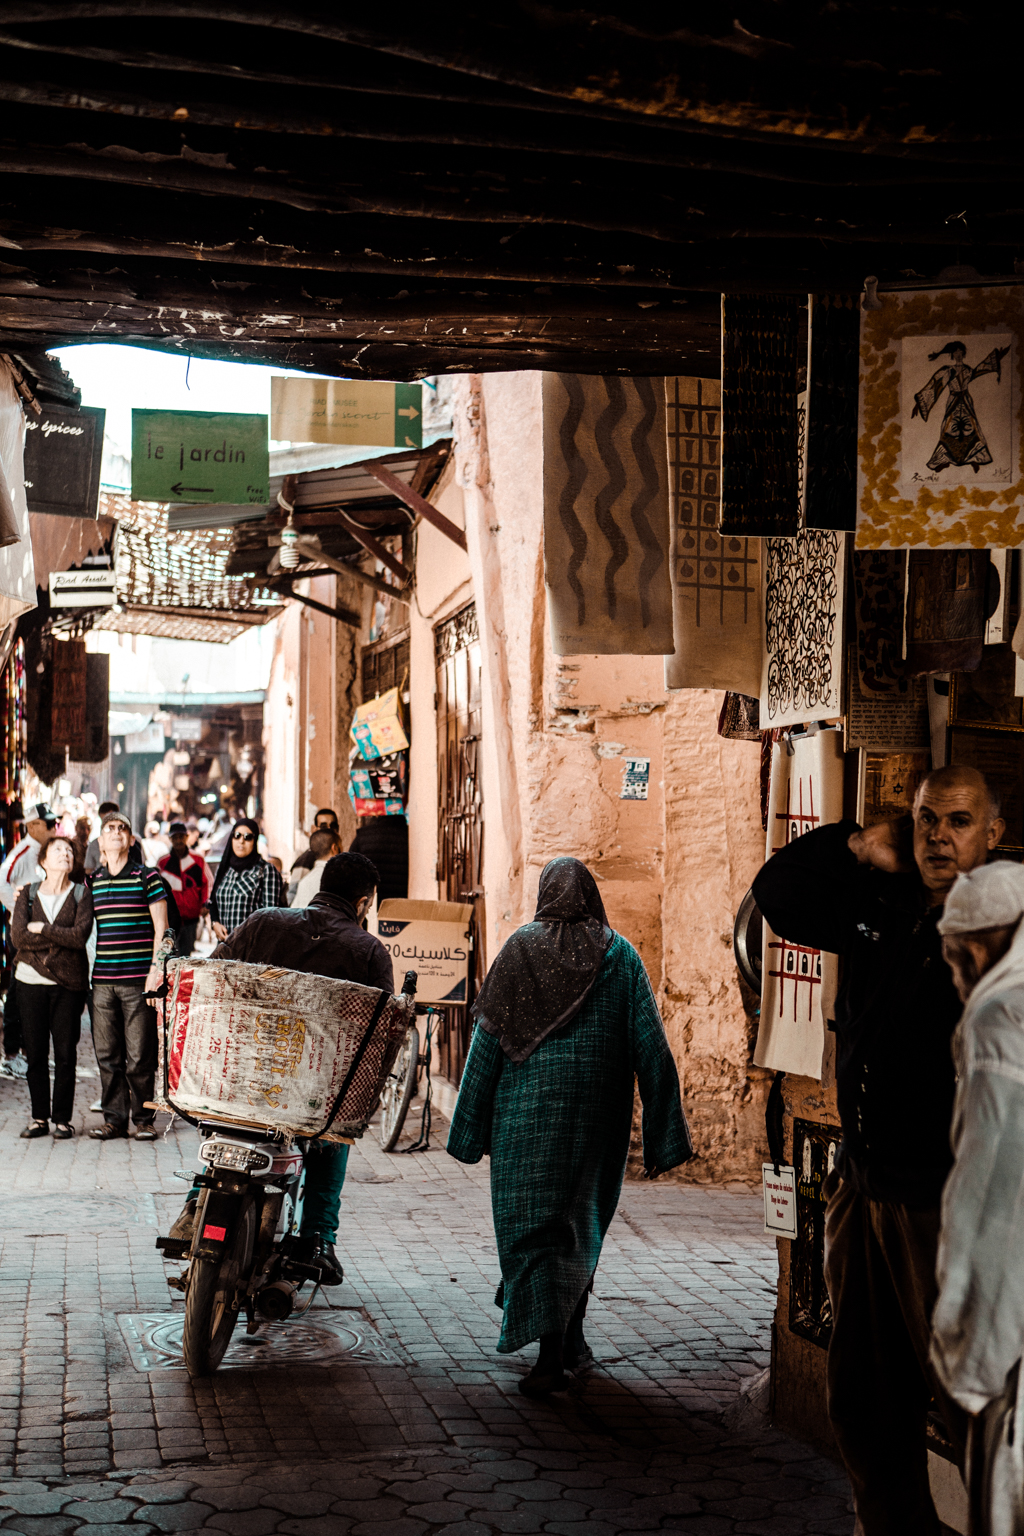 elena-engels-fotografie-marrakech-blogger-travel-reise-shooting196